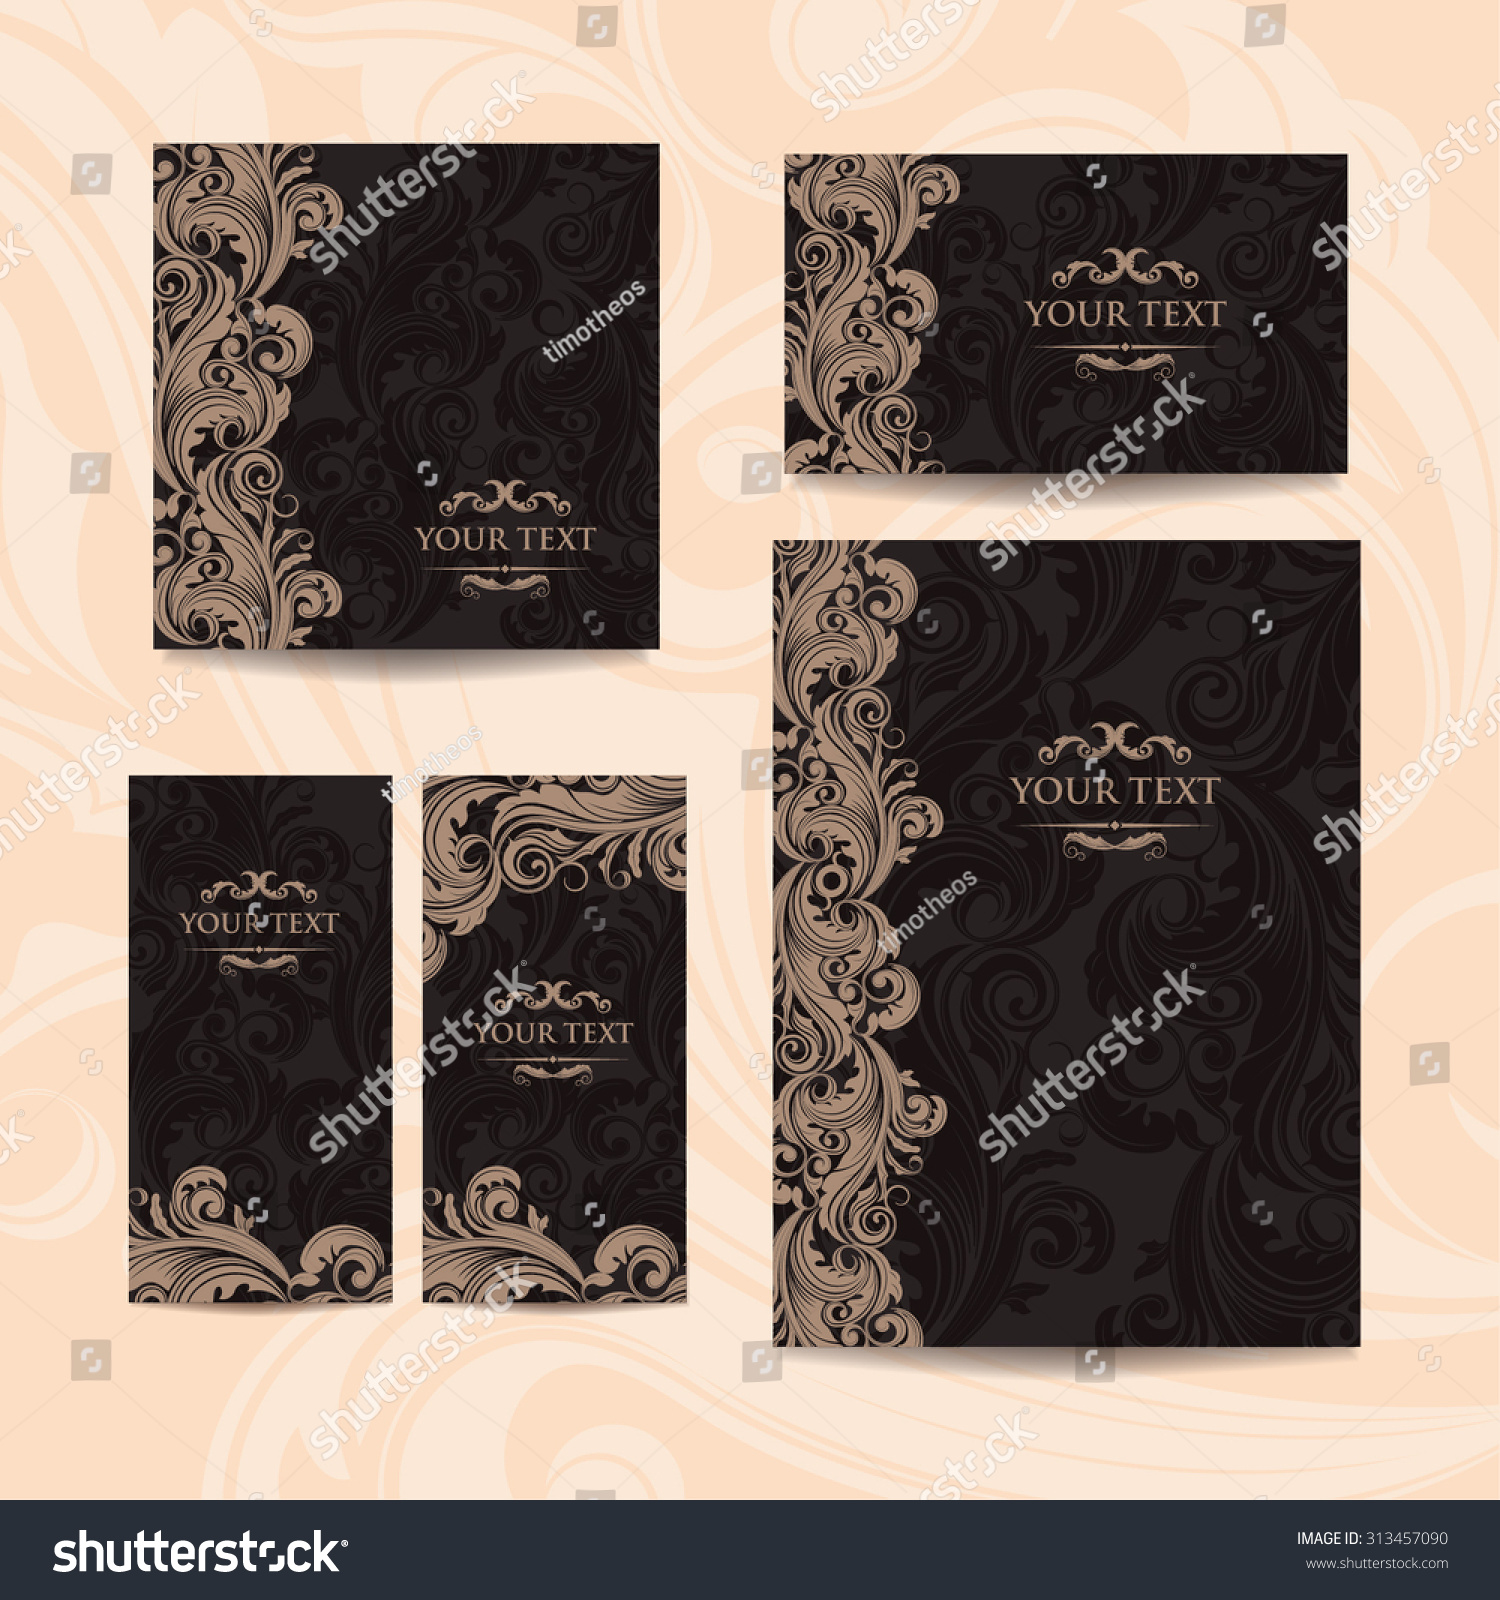 Classic Book Cover Vector ~ Premium royal vintage victorian set templates stock vector